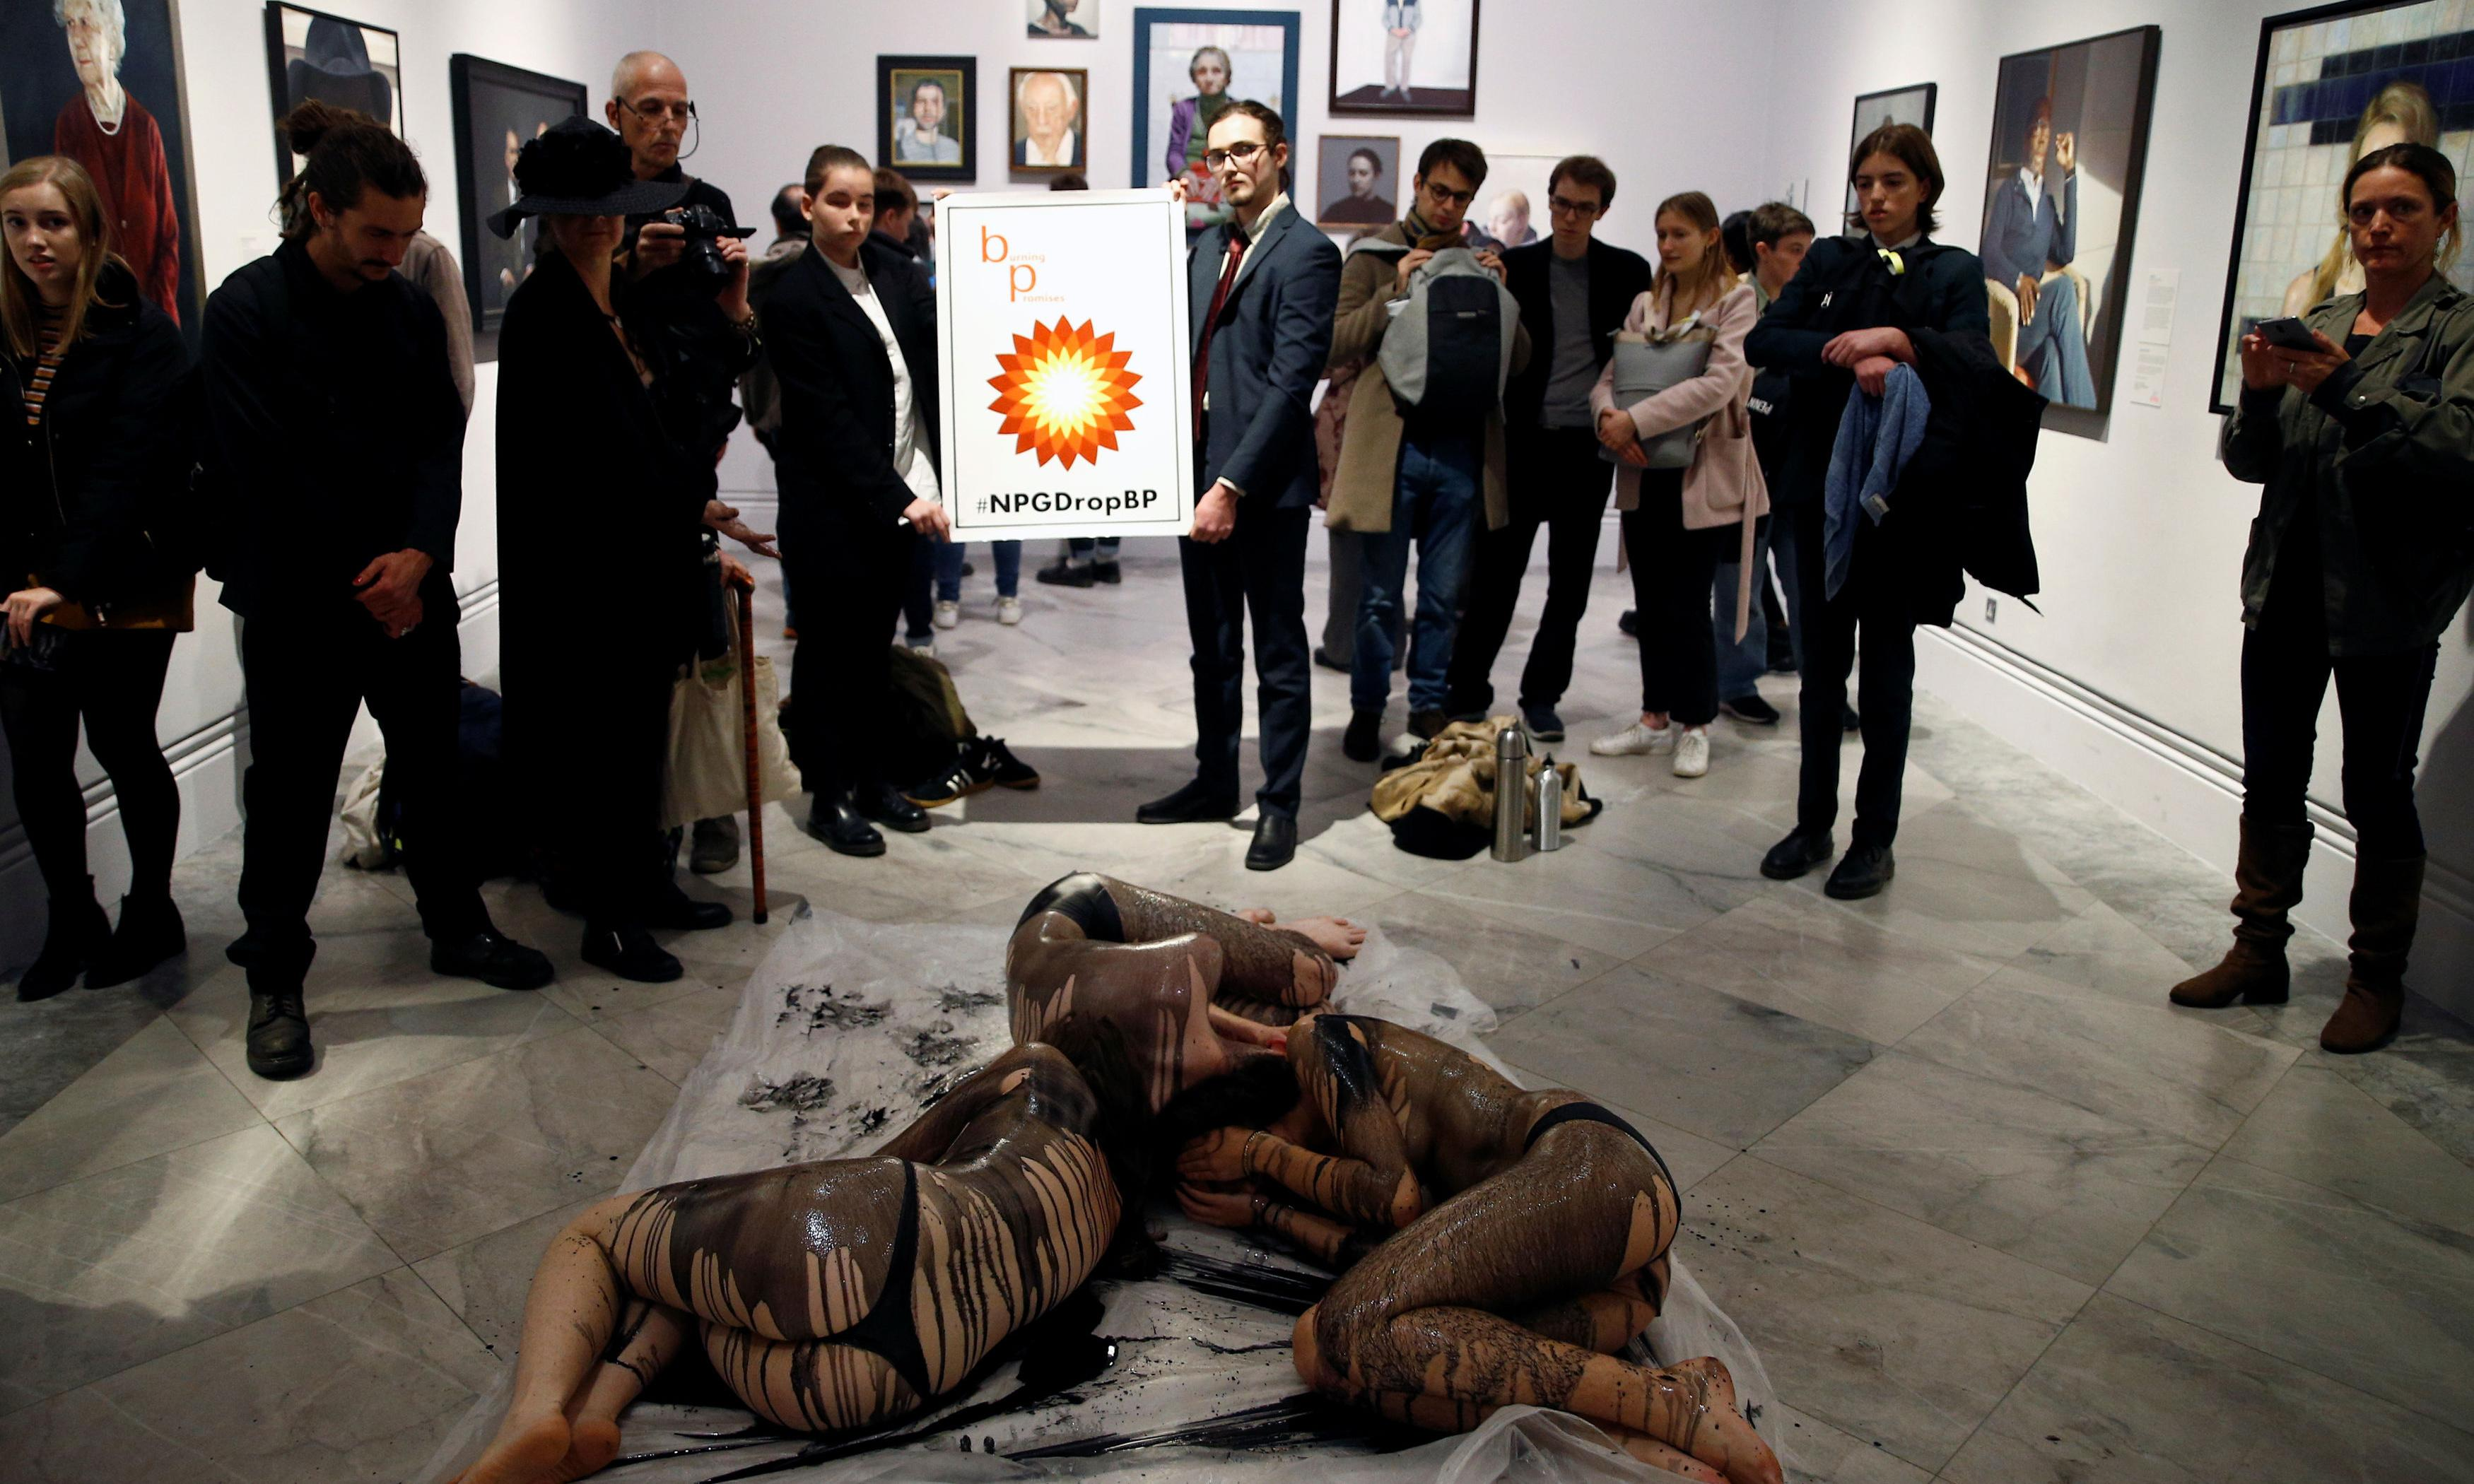 Semi-naked activists protest against National Portrait Gallery's links with BP